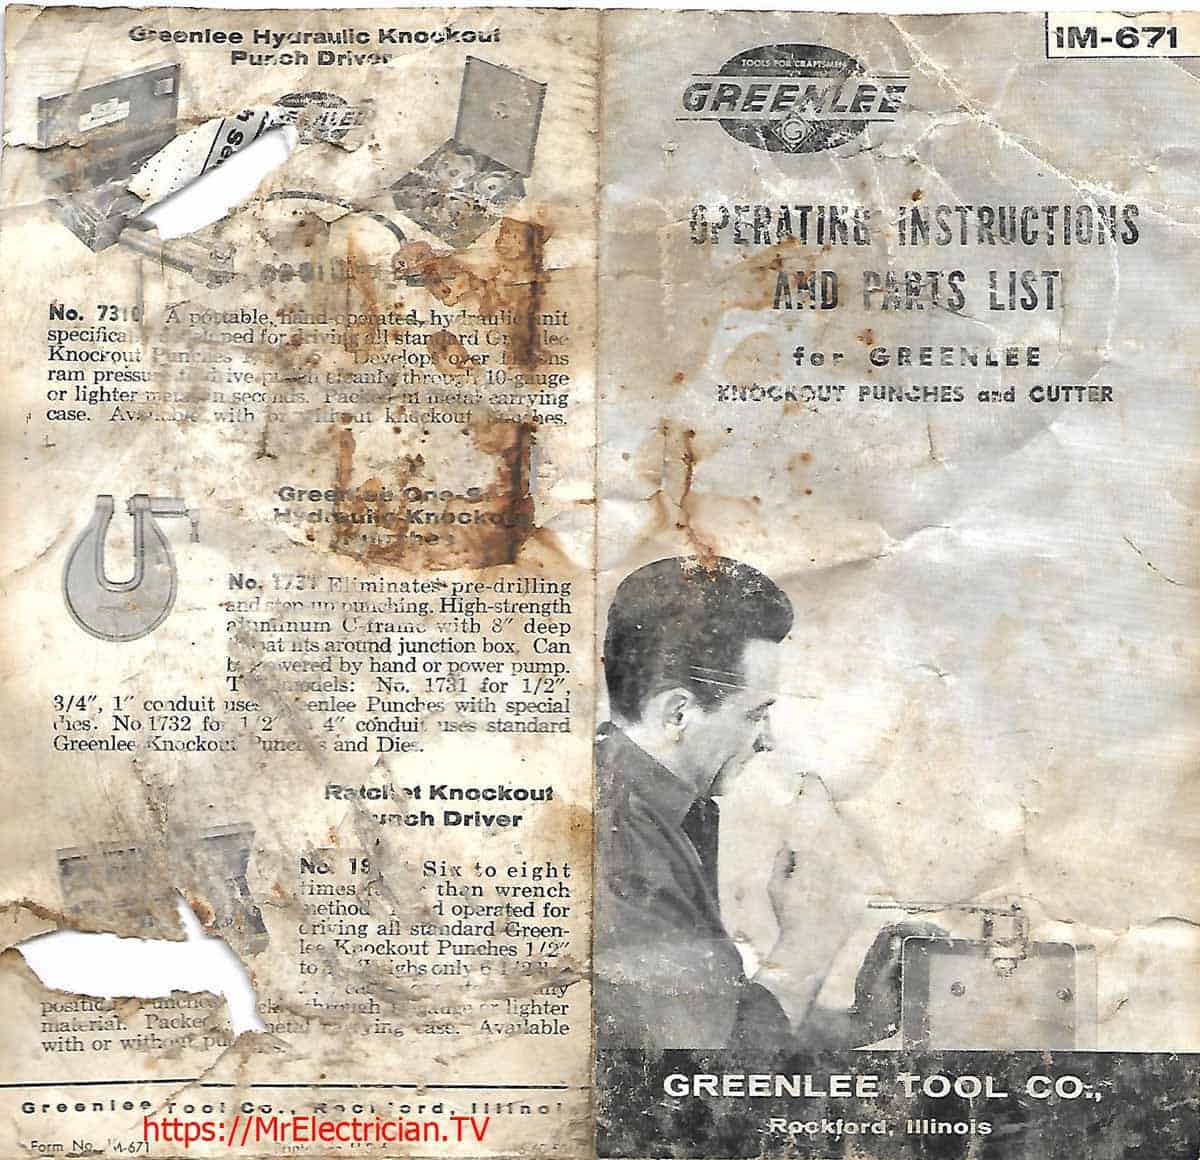 Front and back page of old operating instructions and parts list for Greenlee knockout punches and cutter